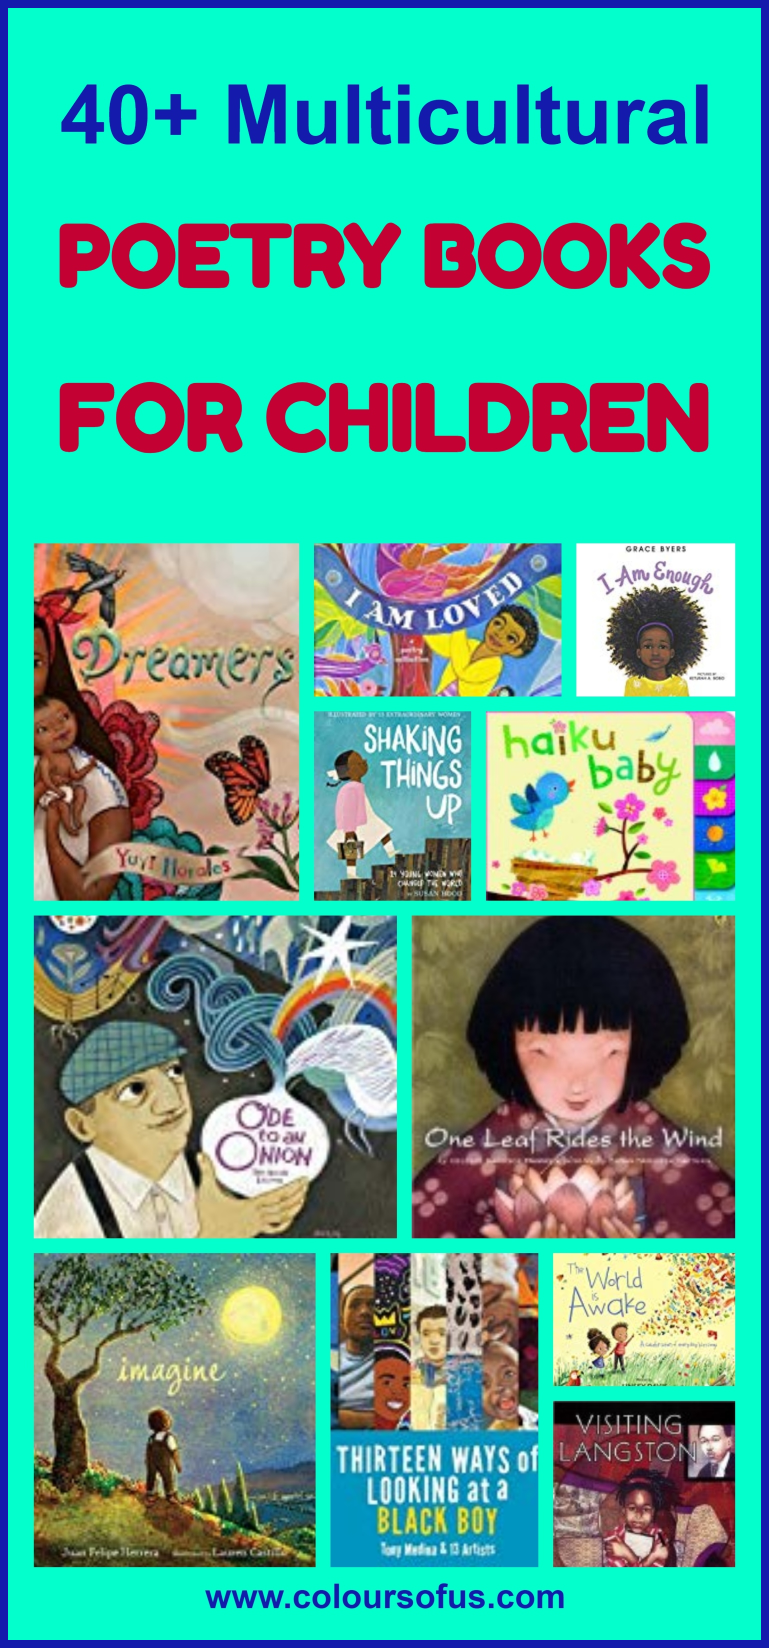 40+ Multicultural Poetry Books for Children